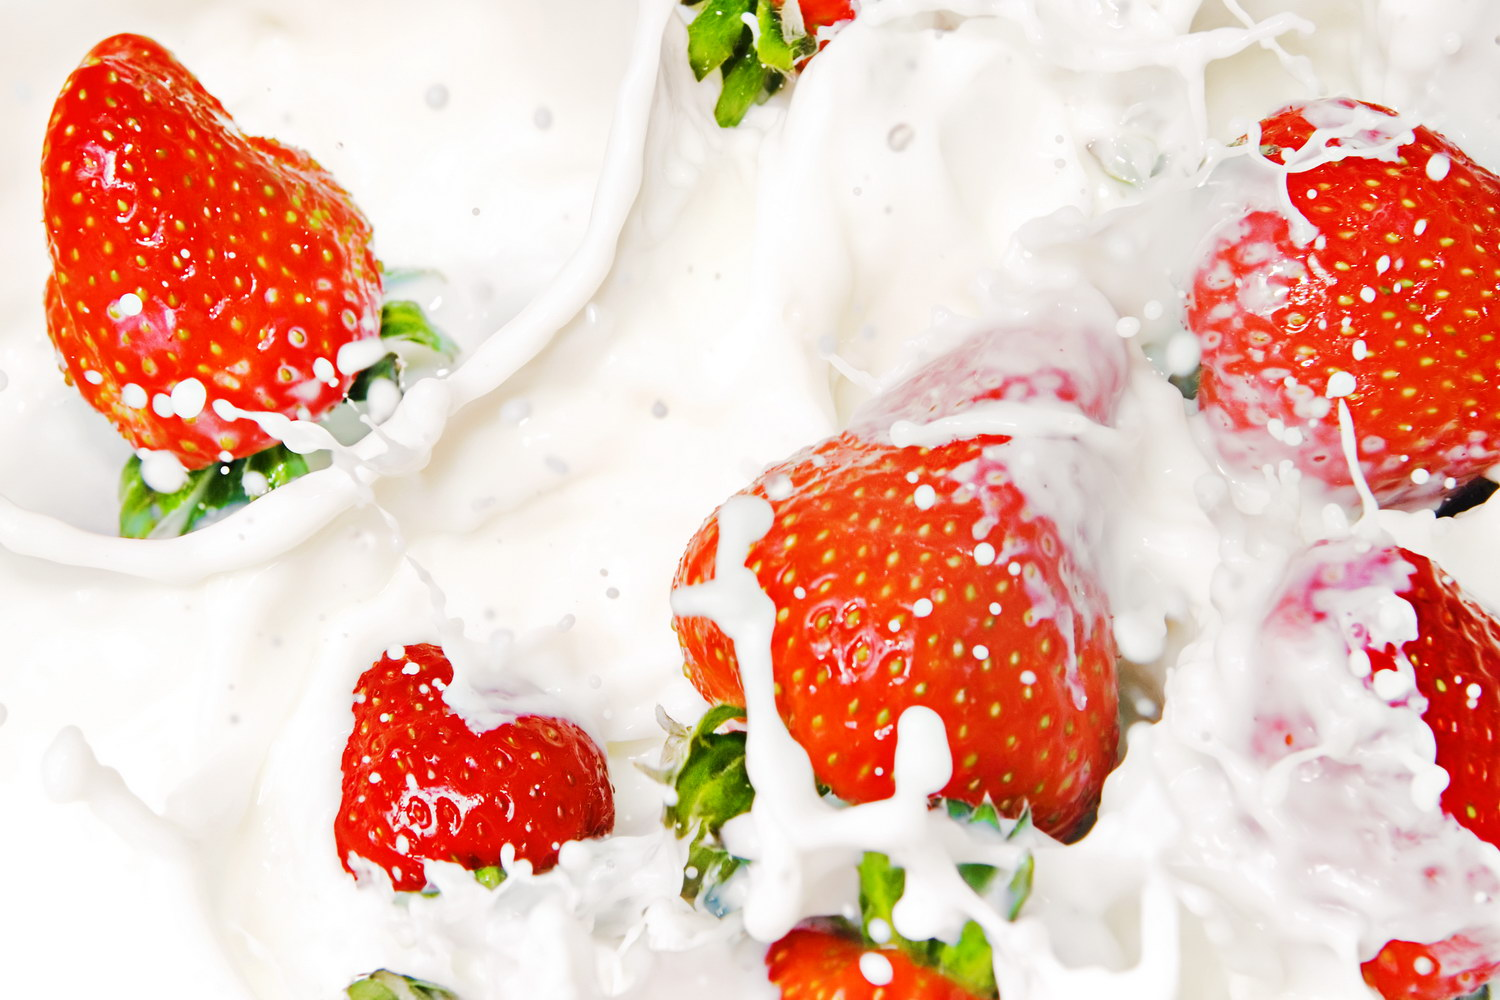 Strawberries in milk, Berry, Snack, Nature, Nutrition, HQ Photo